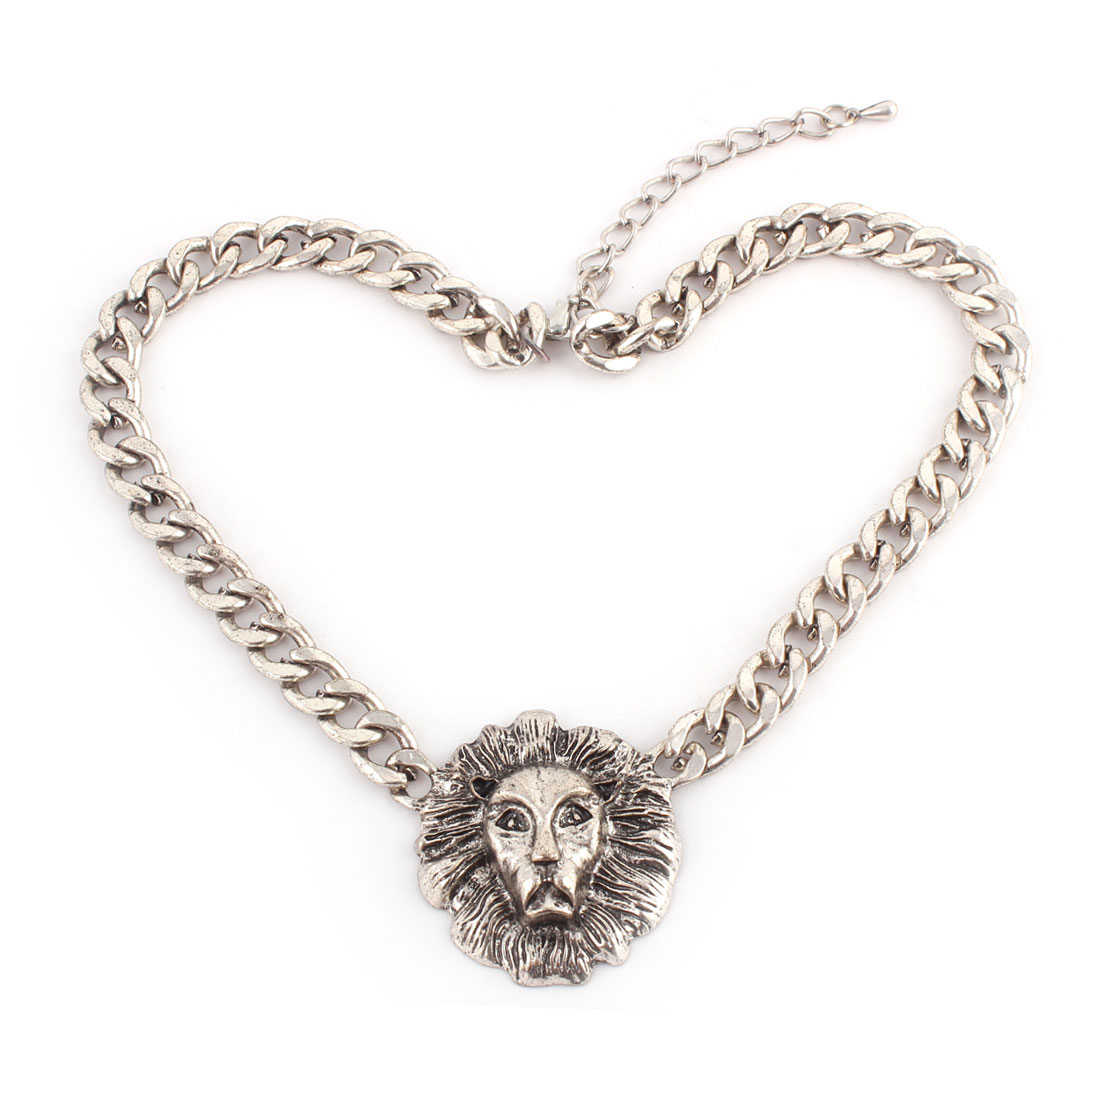 Metal Lion Design Pendant Lobster Clasp Chain Necklace Clothes Decor Silver Tone